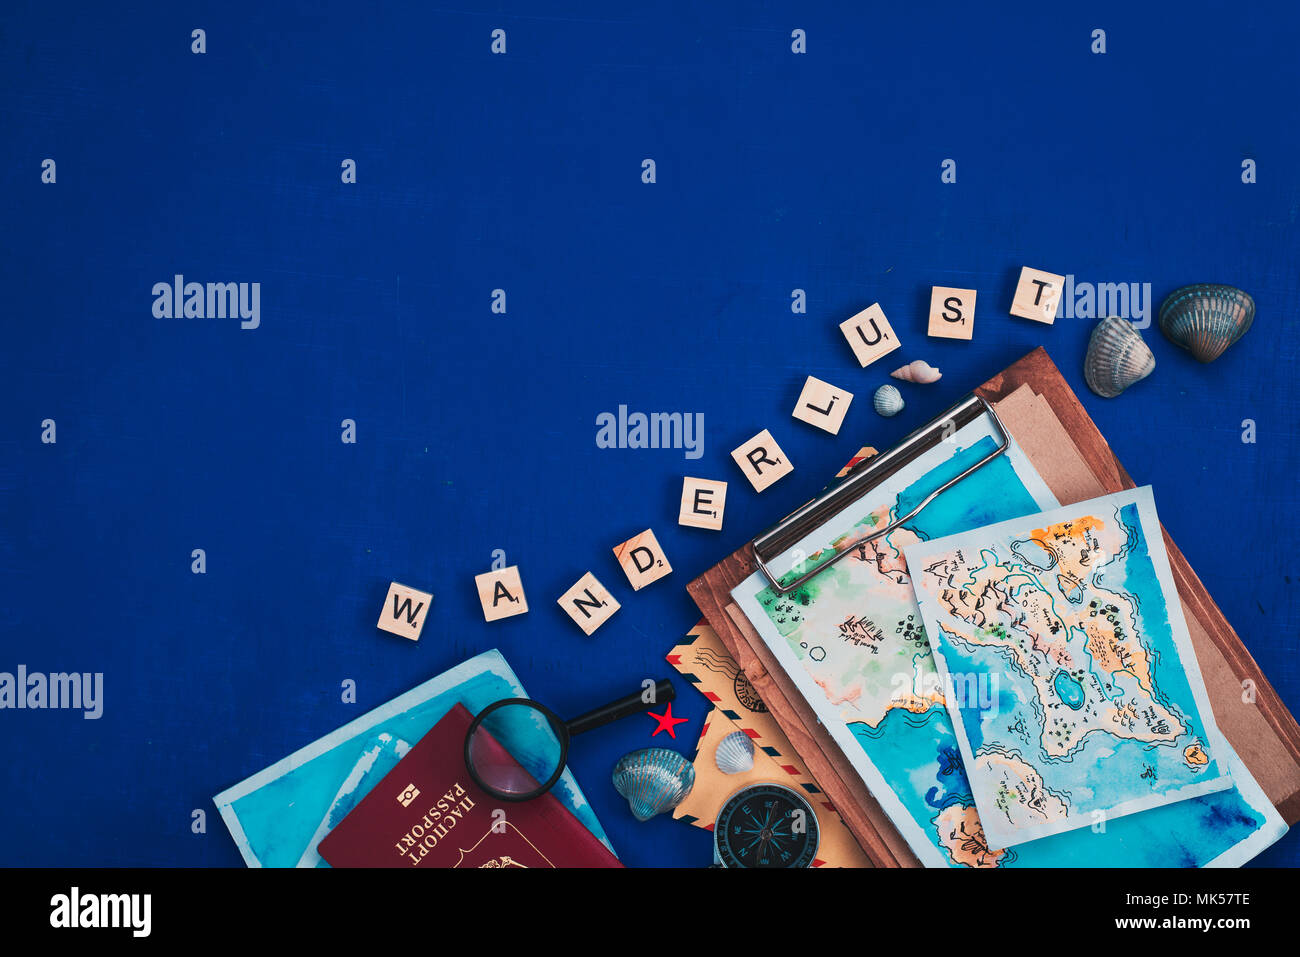 Sea travel and exploration concept. Watercolor maps, passport, compass, binoculars, envelopes, magnifying glass, and Wanderlust scrabble letters flat lay on a navy blue background with copy space - Stock Image